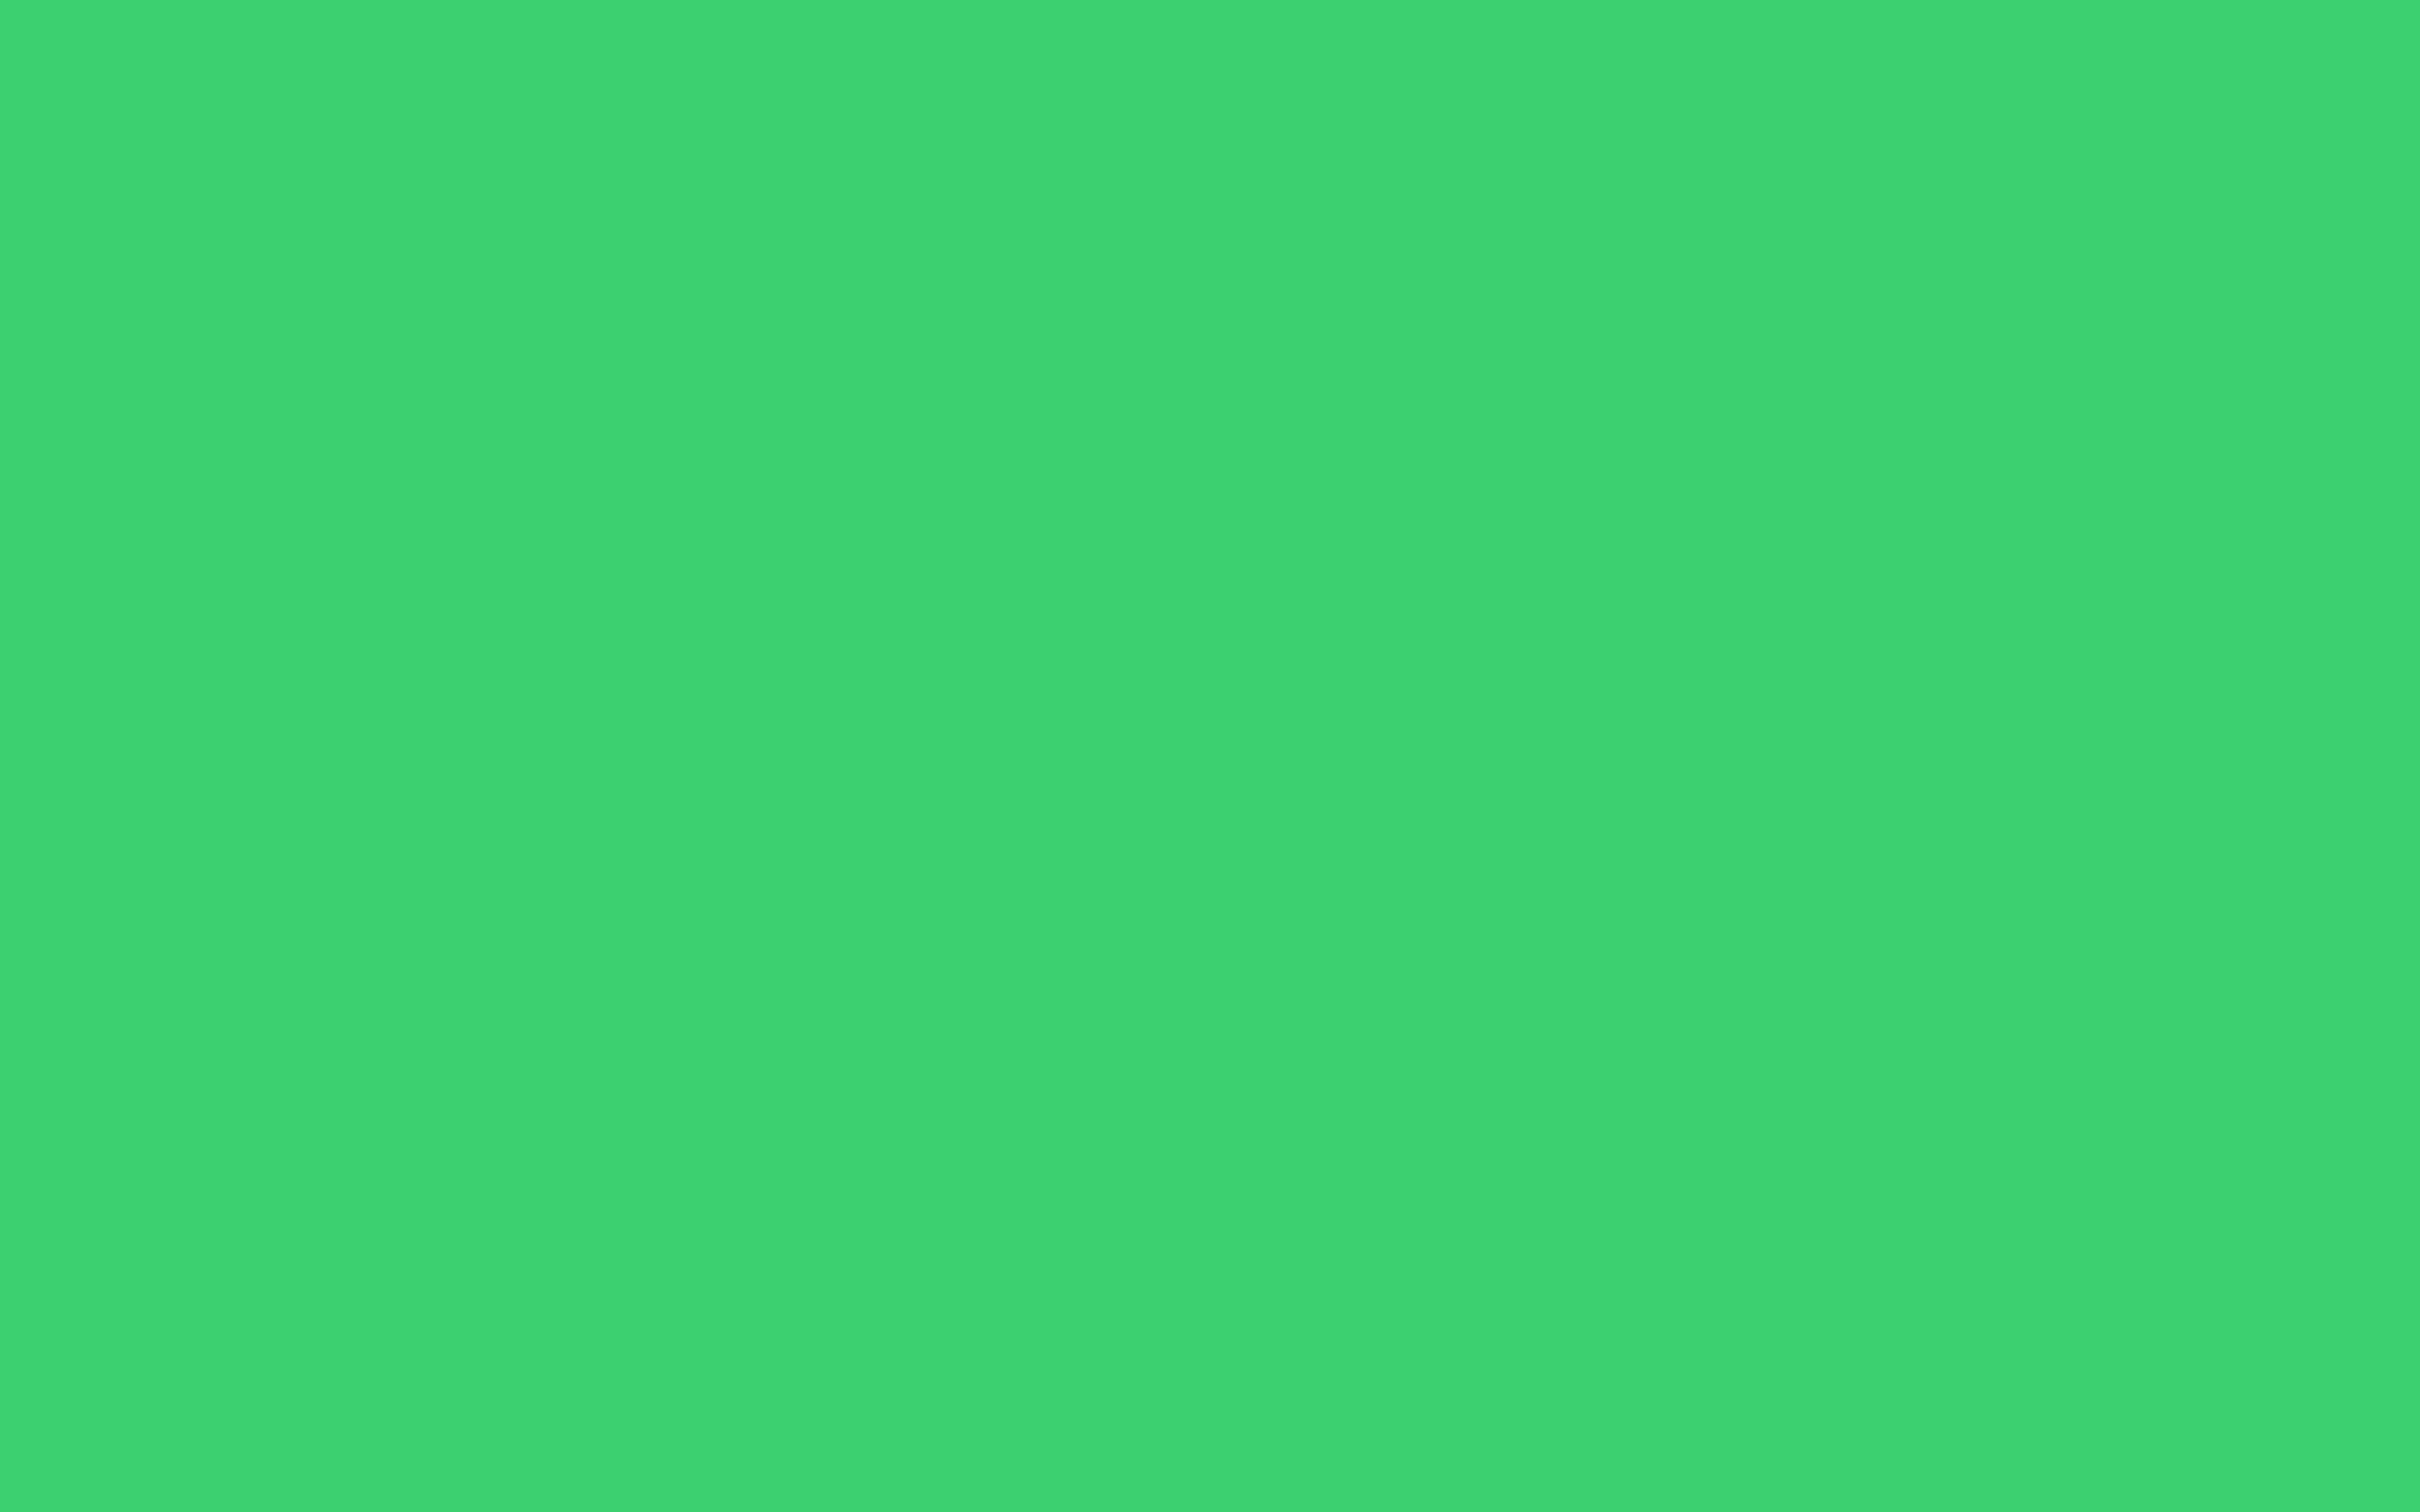 2880x1800 UFO Green Solid Color Background